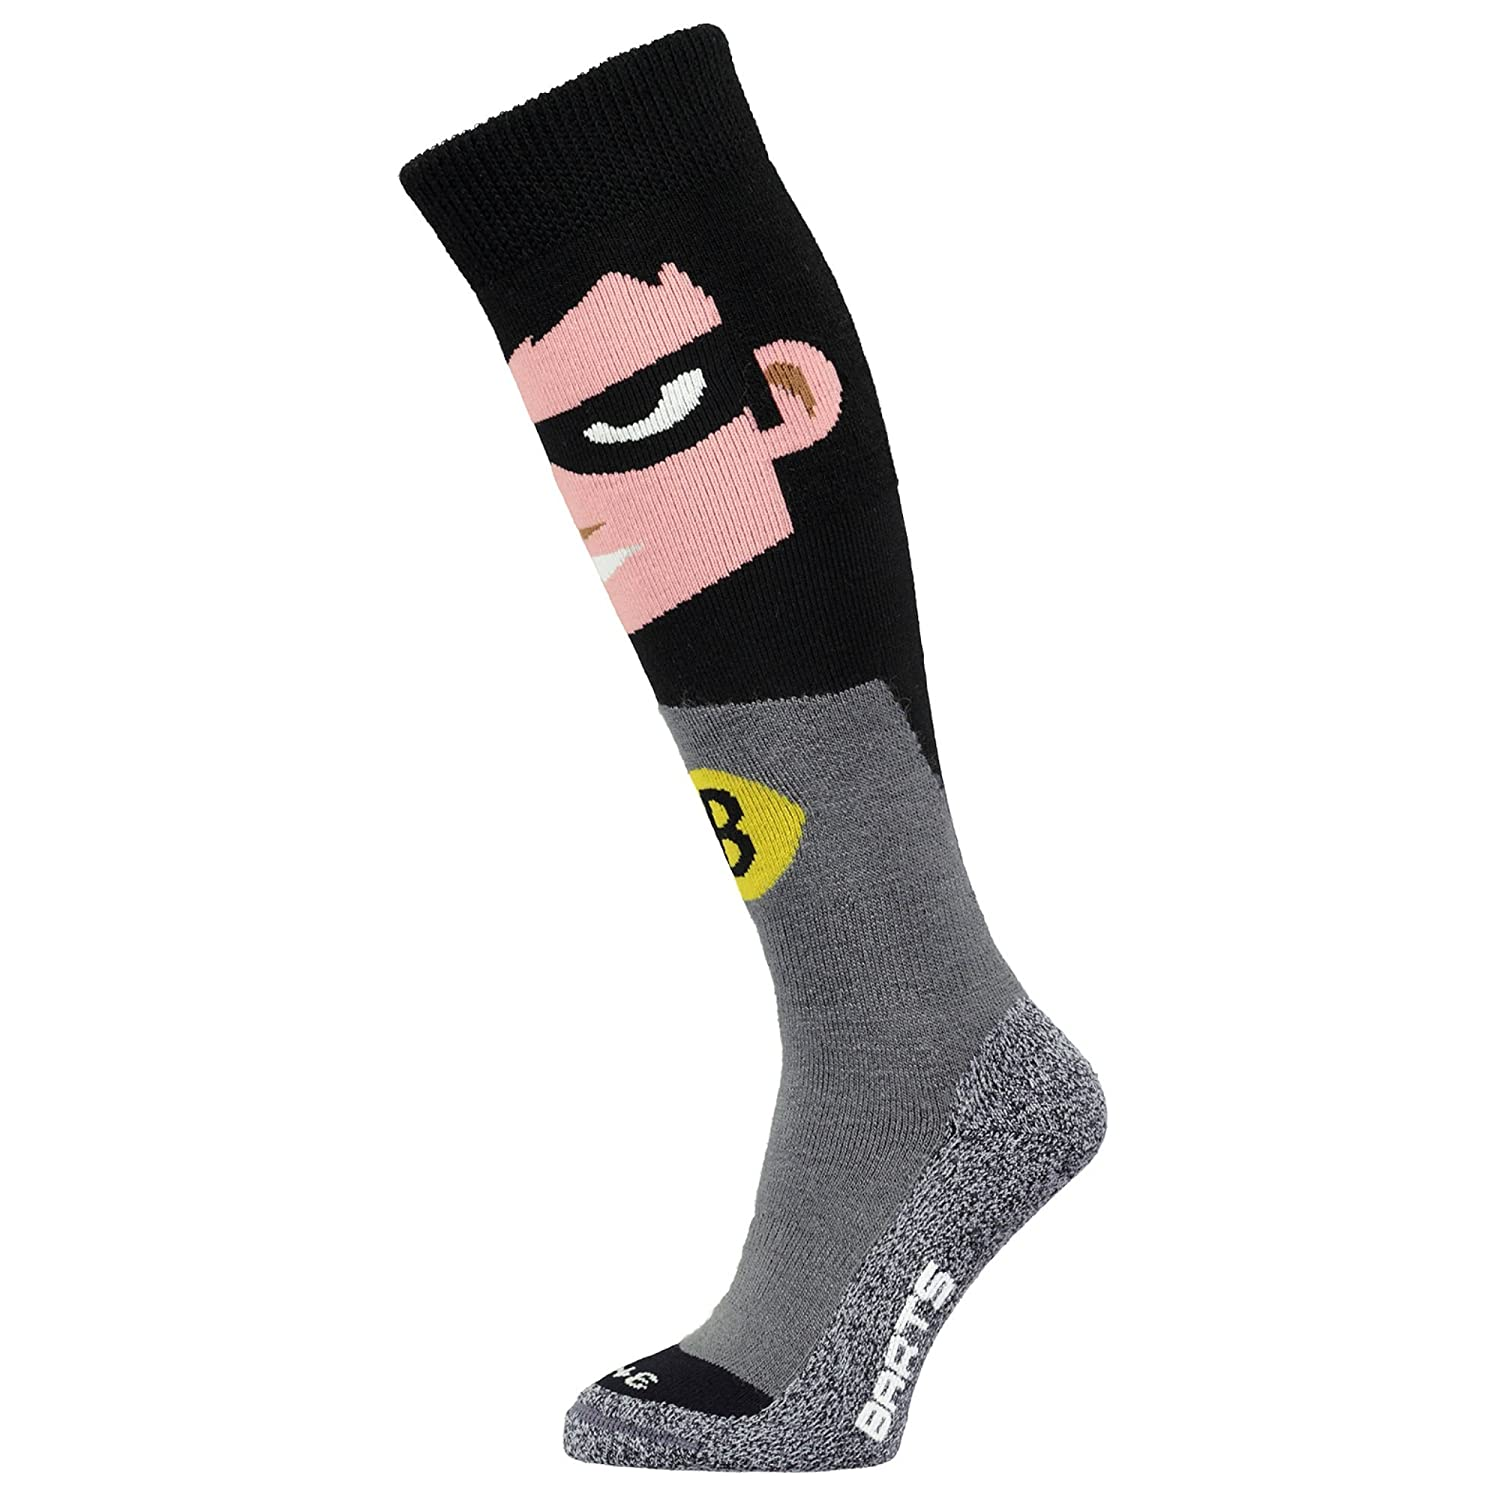 Barts Skisocks Super Hero Kids